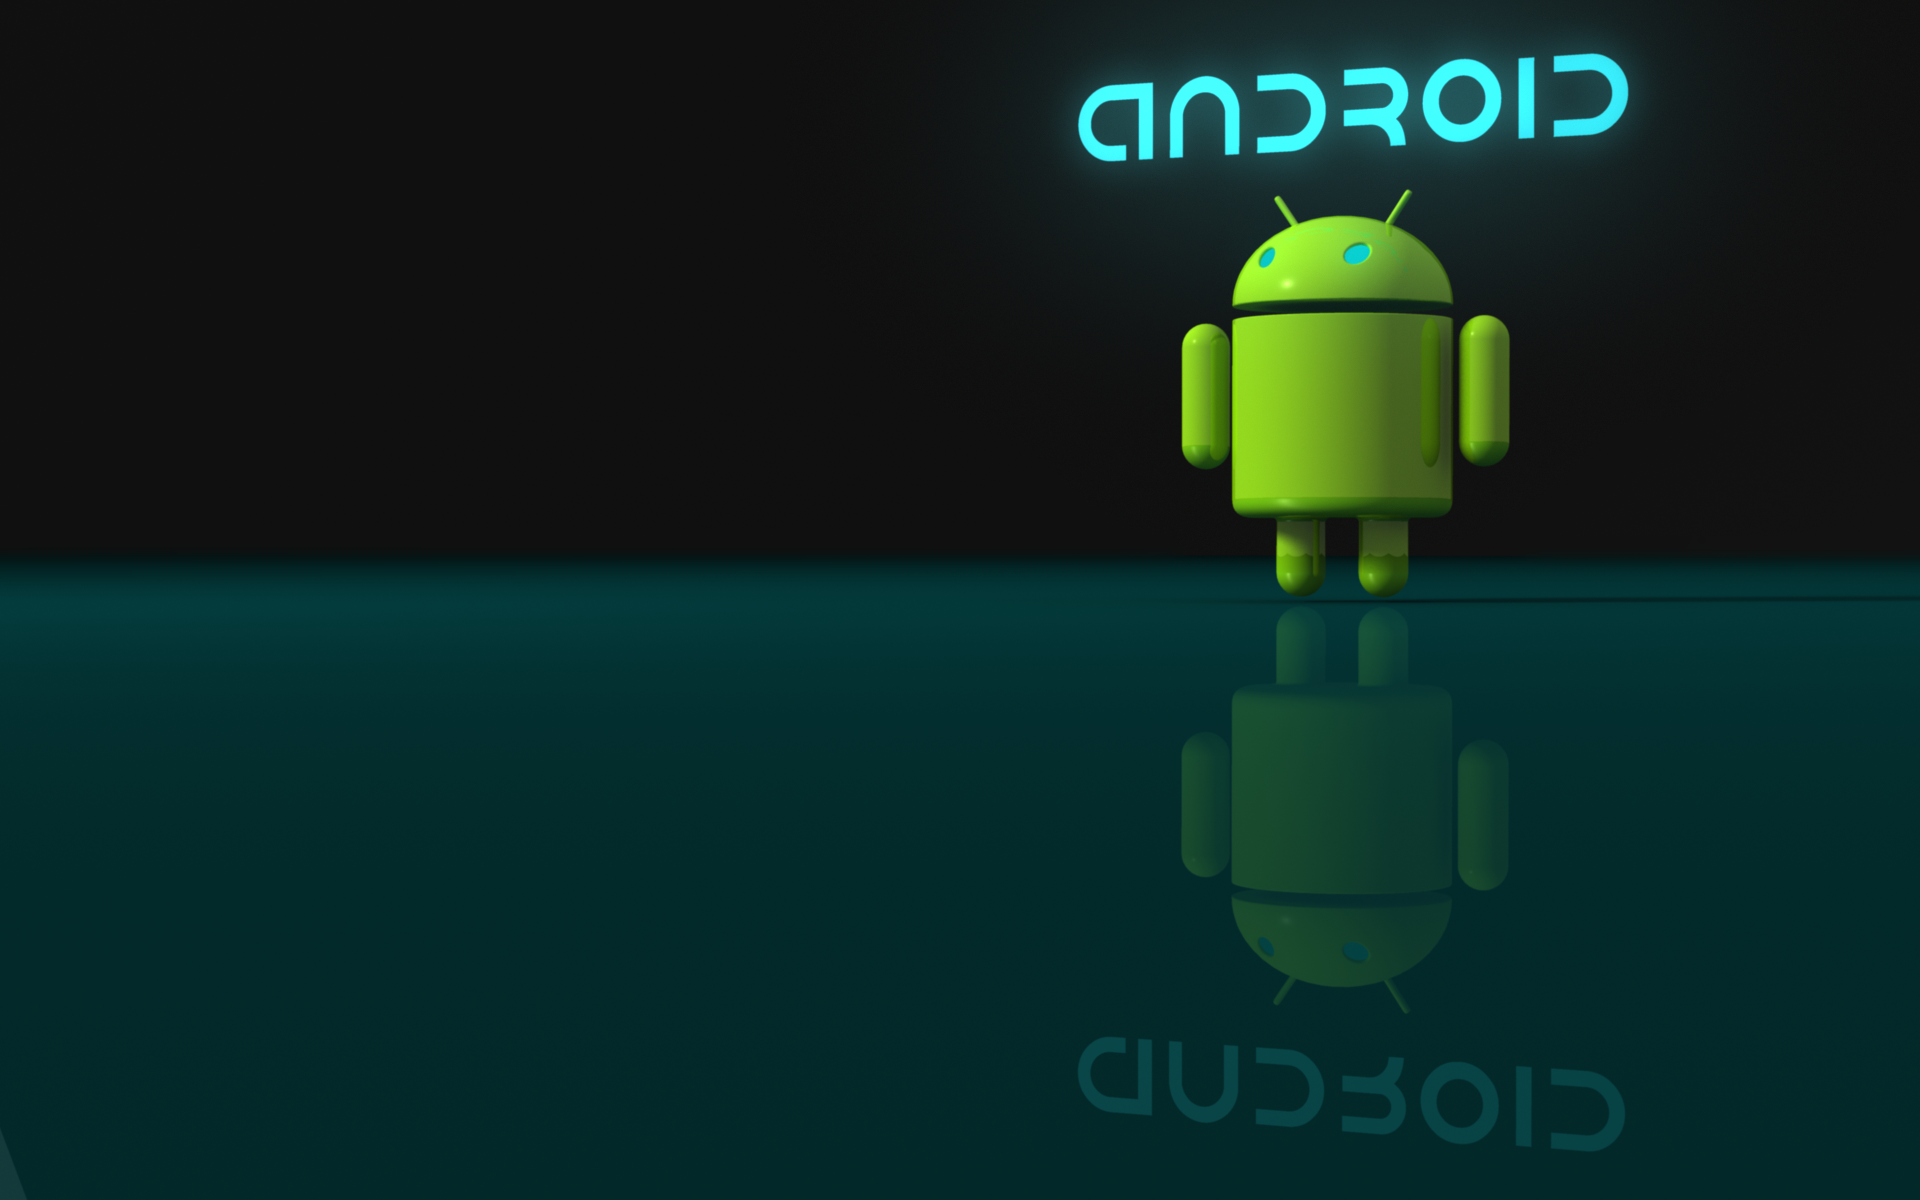 android - Android 4.0.4 ist da